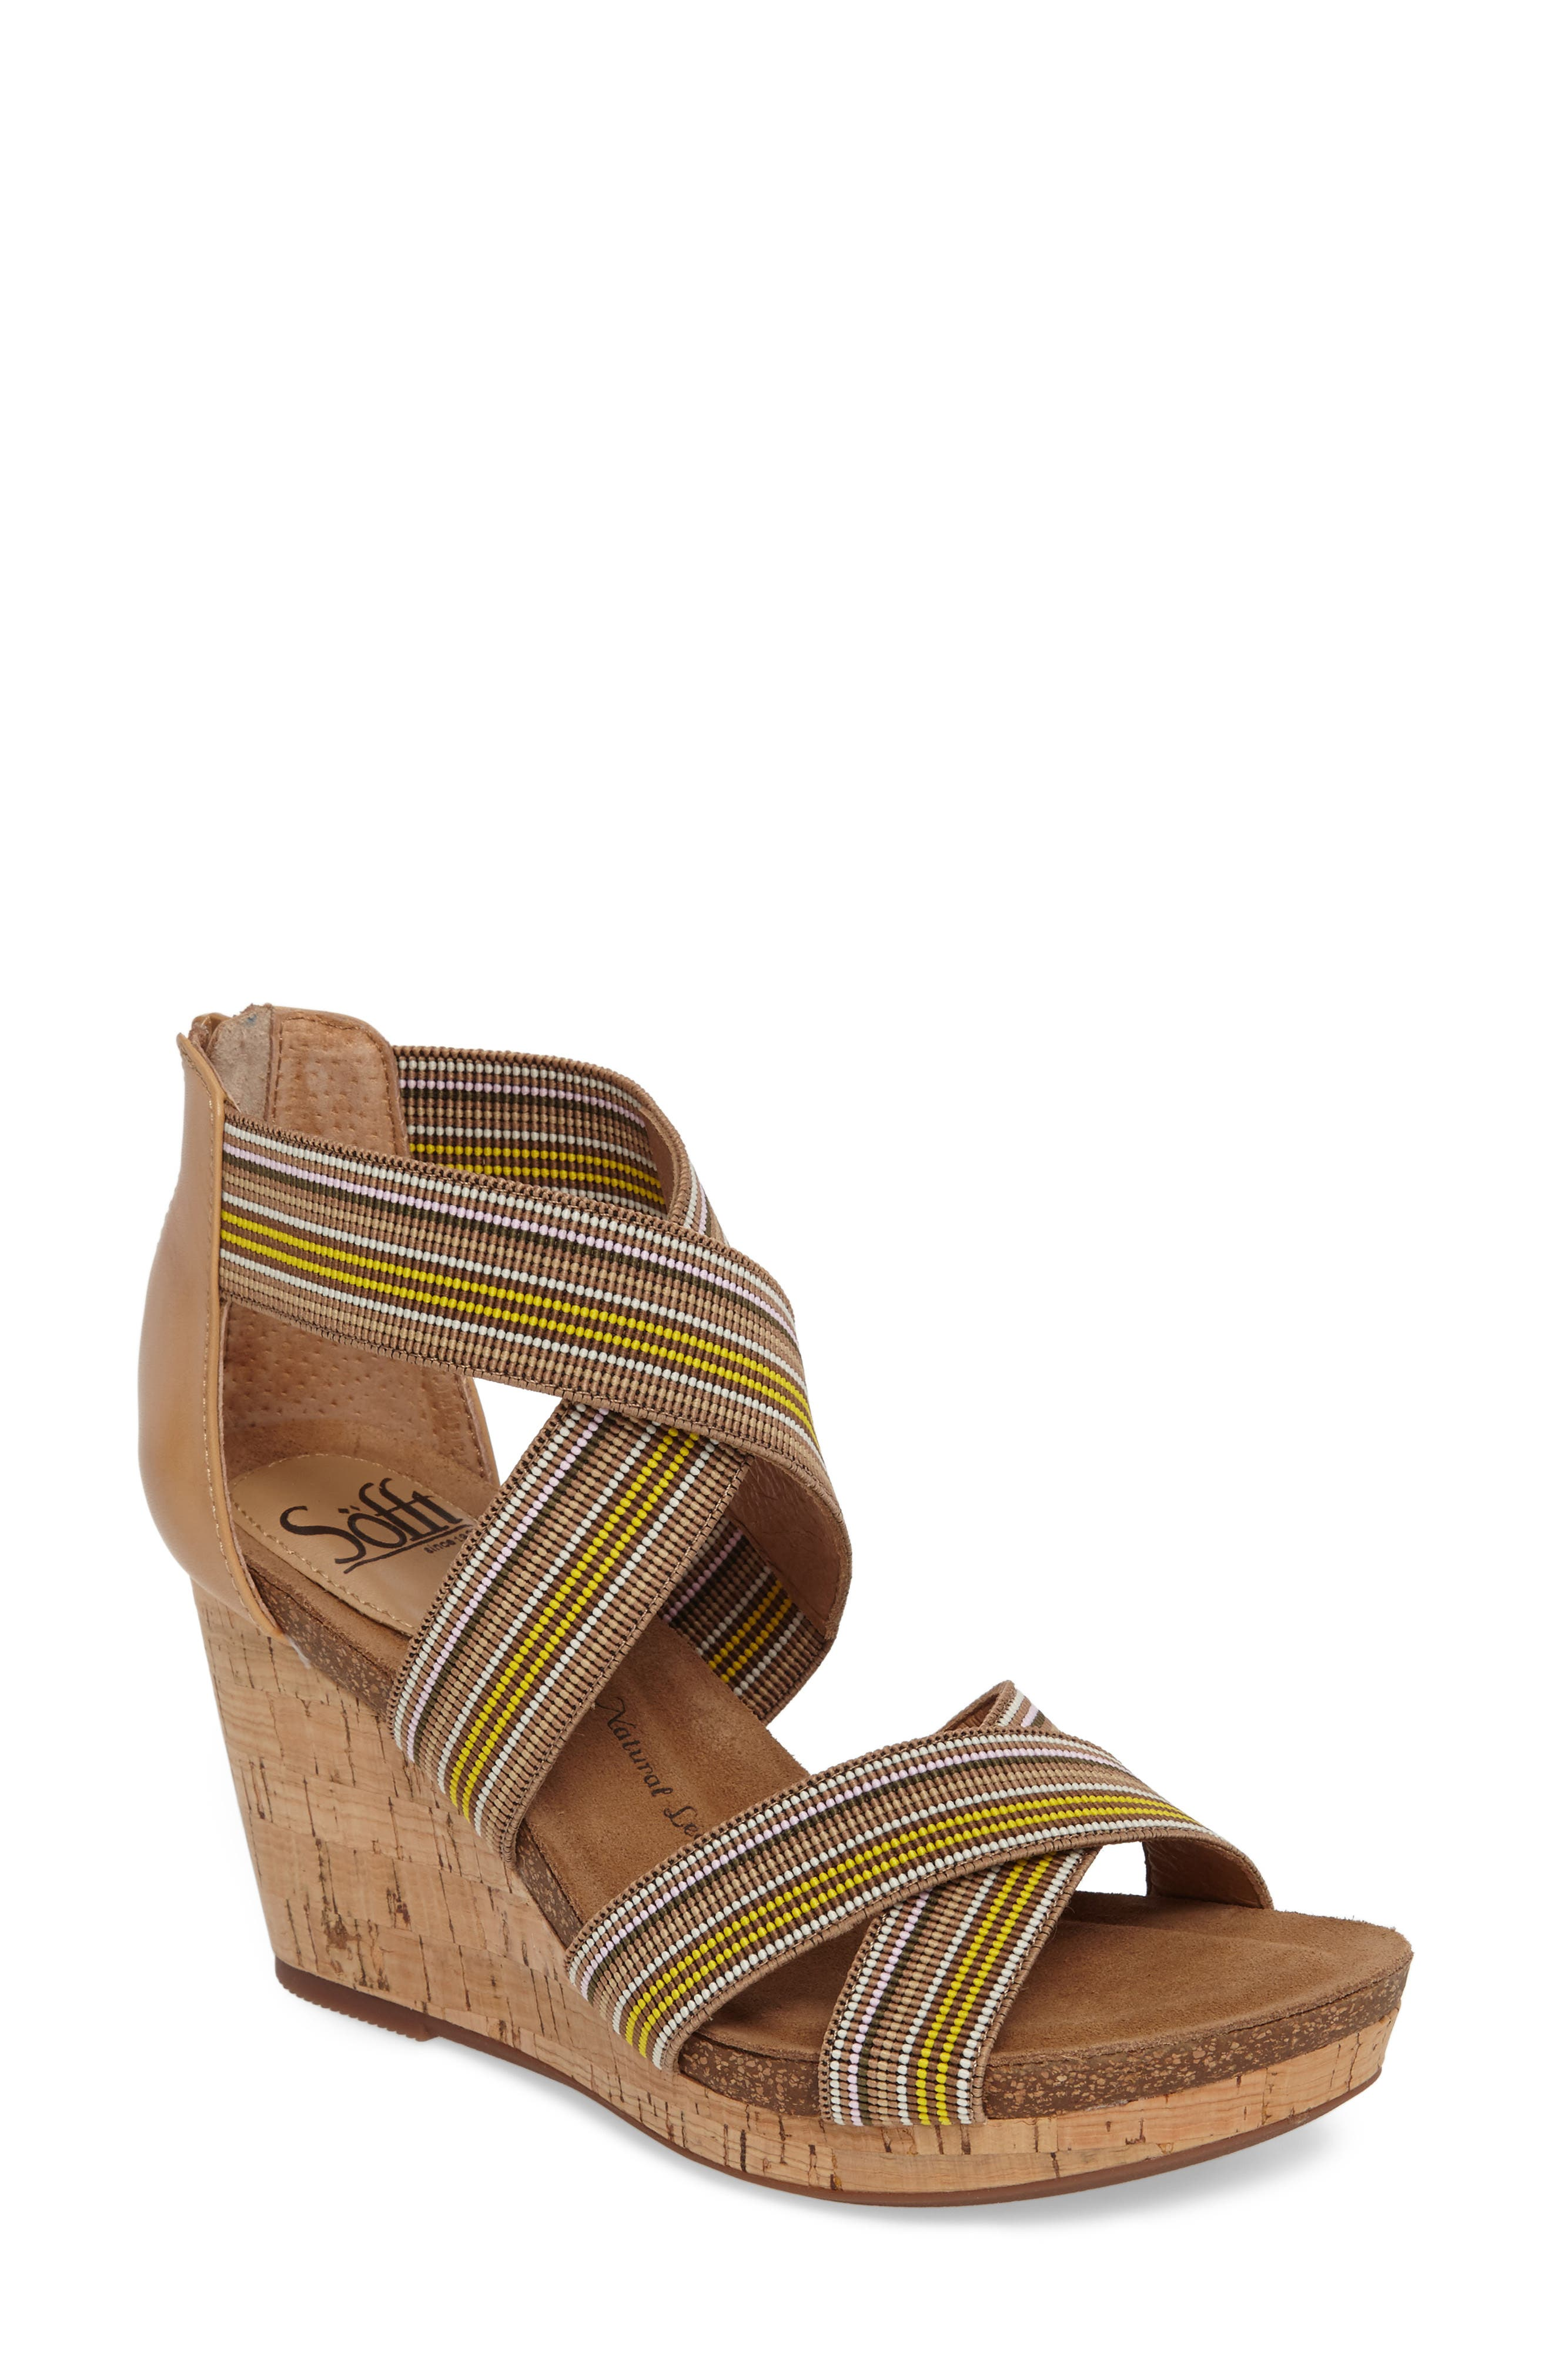 Main Image - Söfft Cary Cross Strap Wedge Sandal (Women)